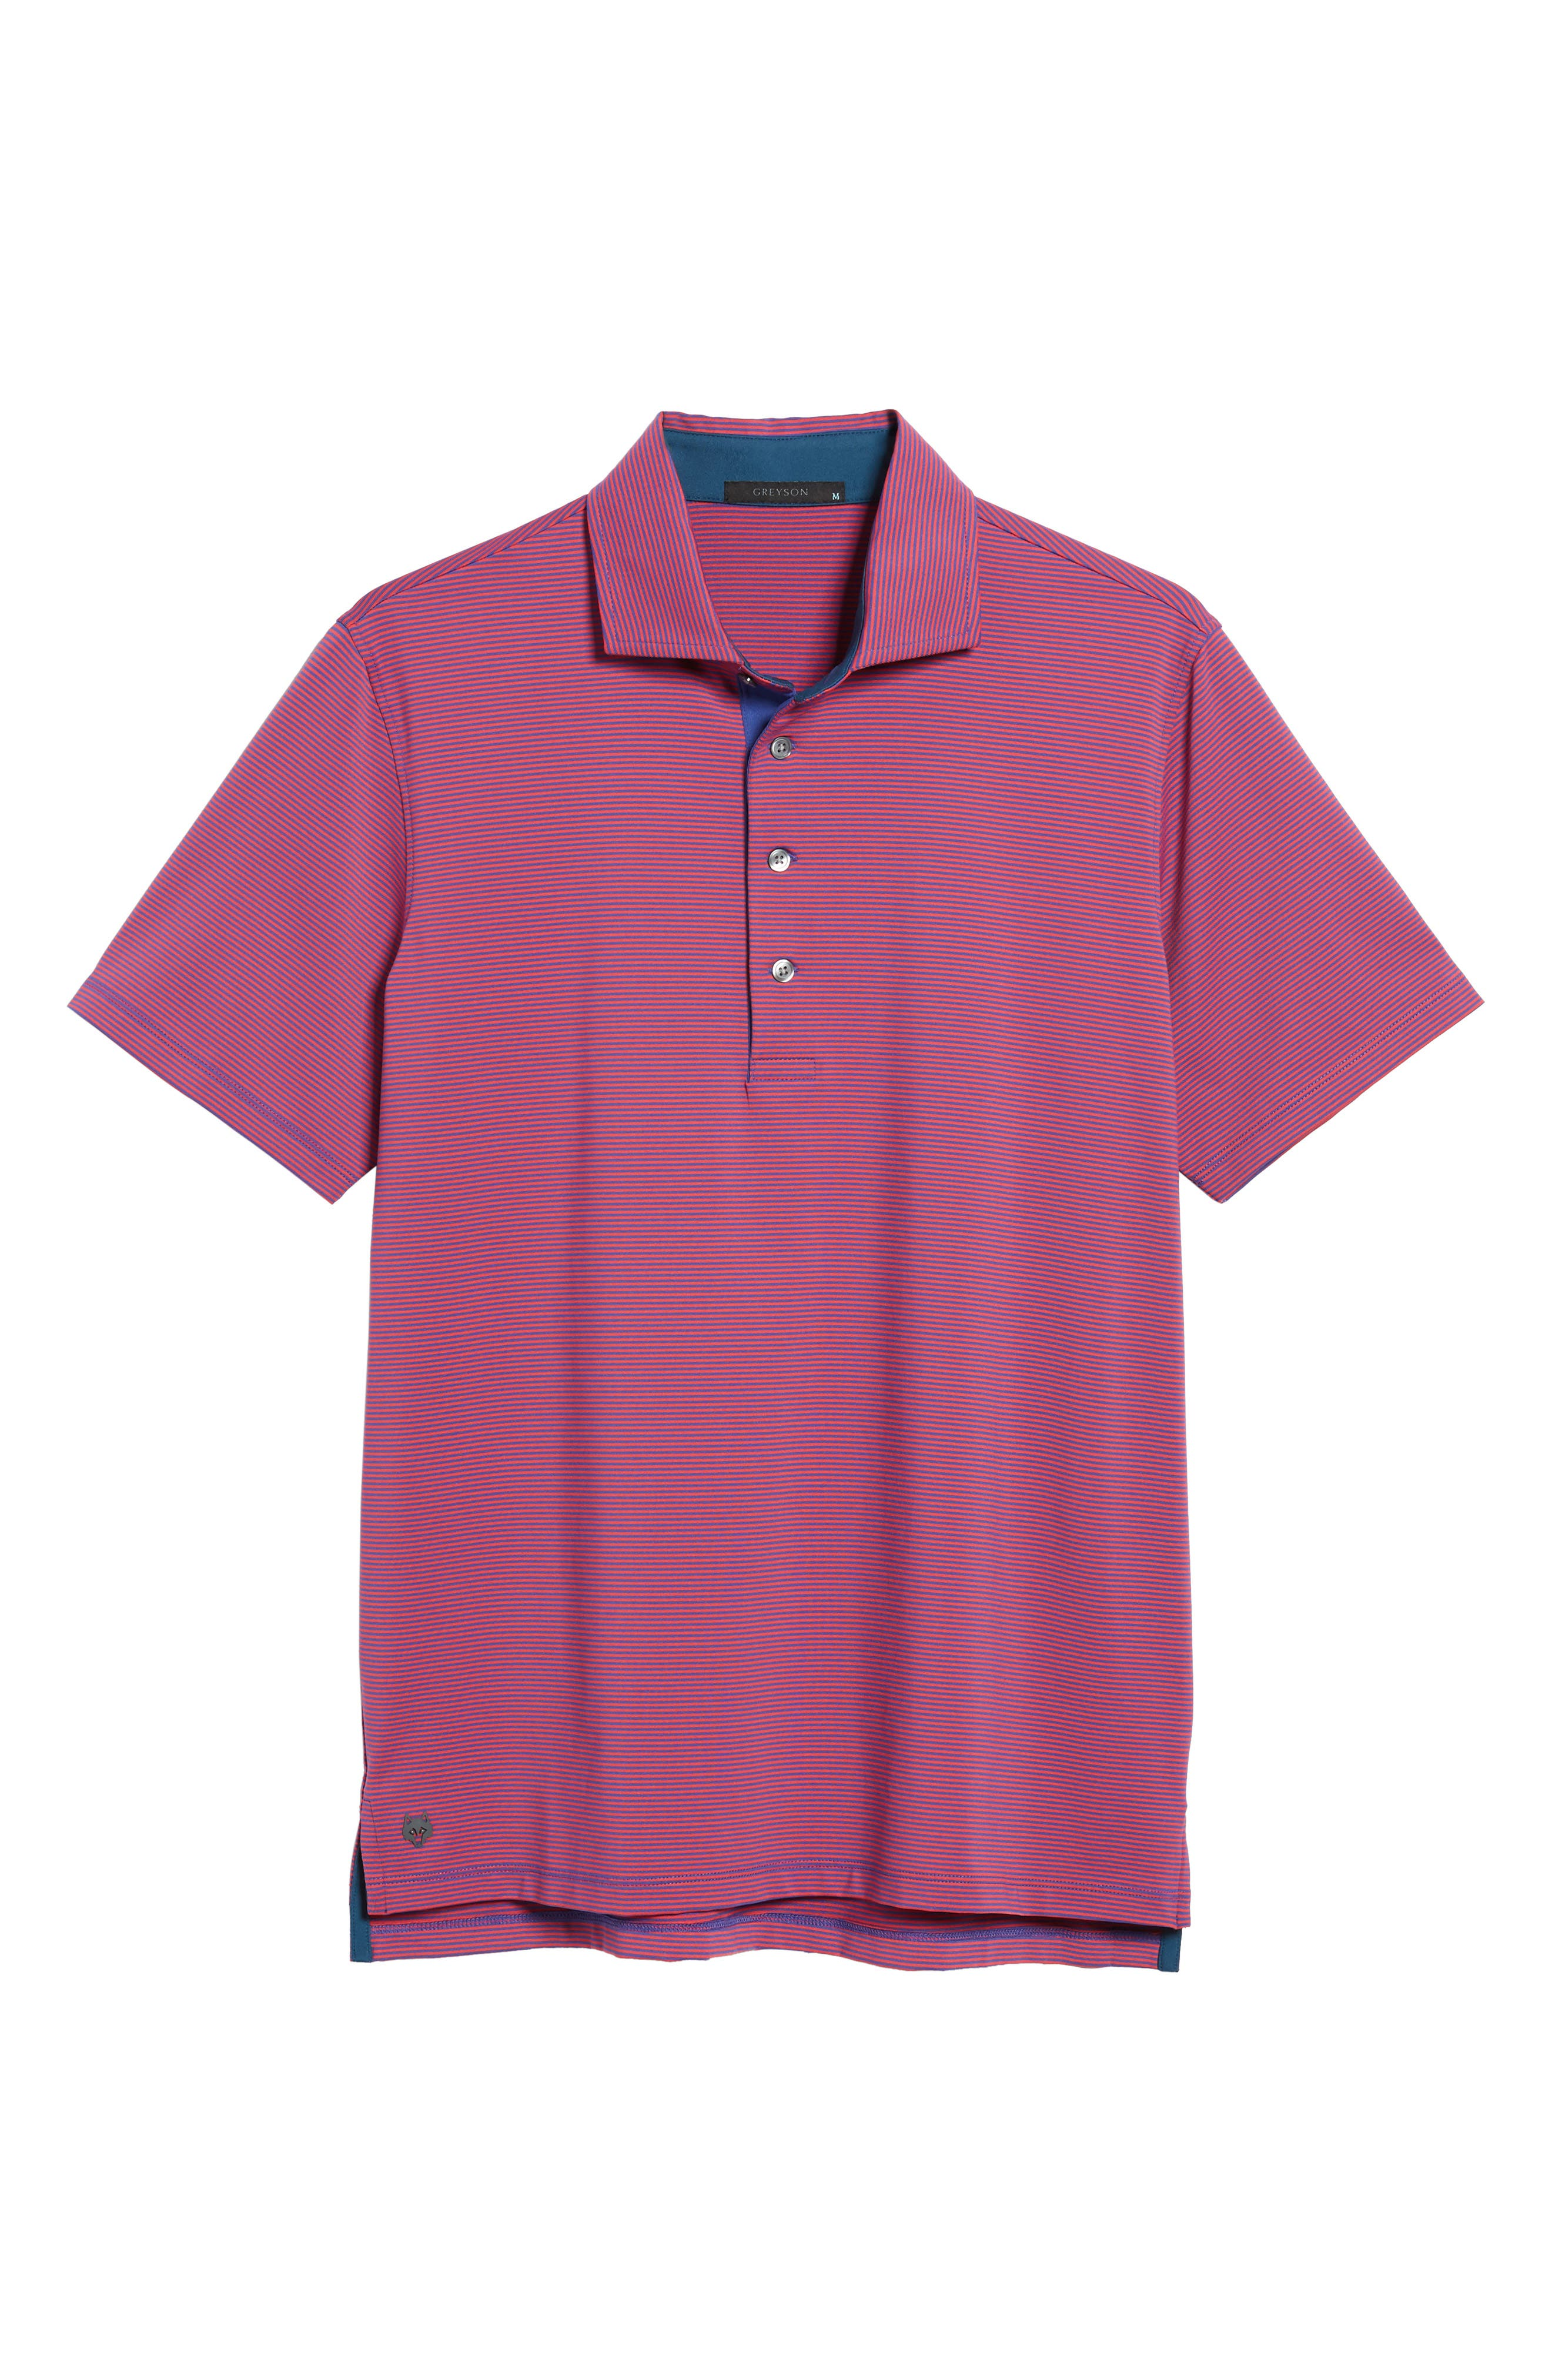 Saranac Jersey Polo,                             Alternate thumbnail 6, color,                             650